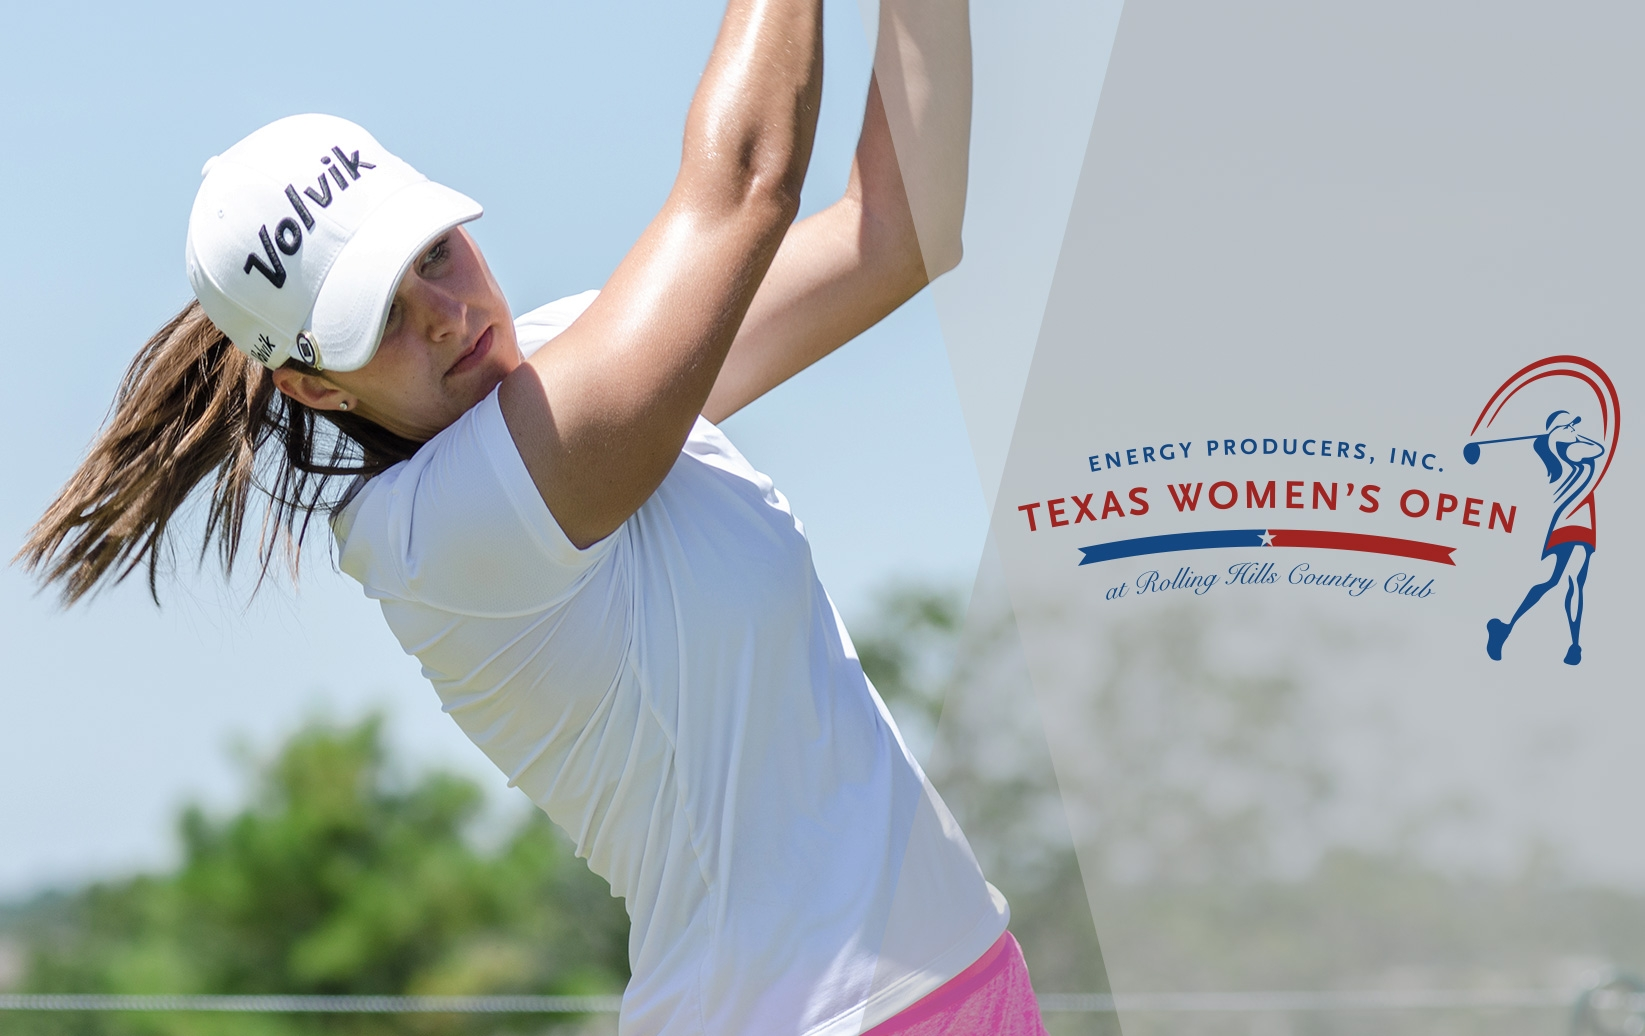 Hoffman Jumps Into Lead at the 2017 Energy Producers, Inc. Texas Women's Open at Rolling Hills Country Club